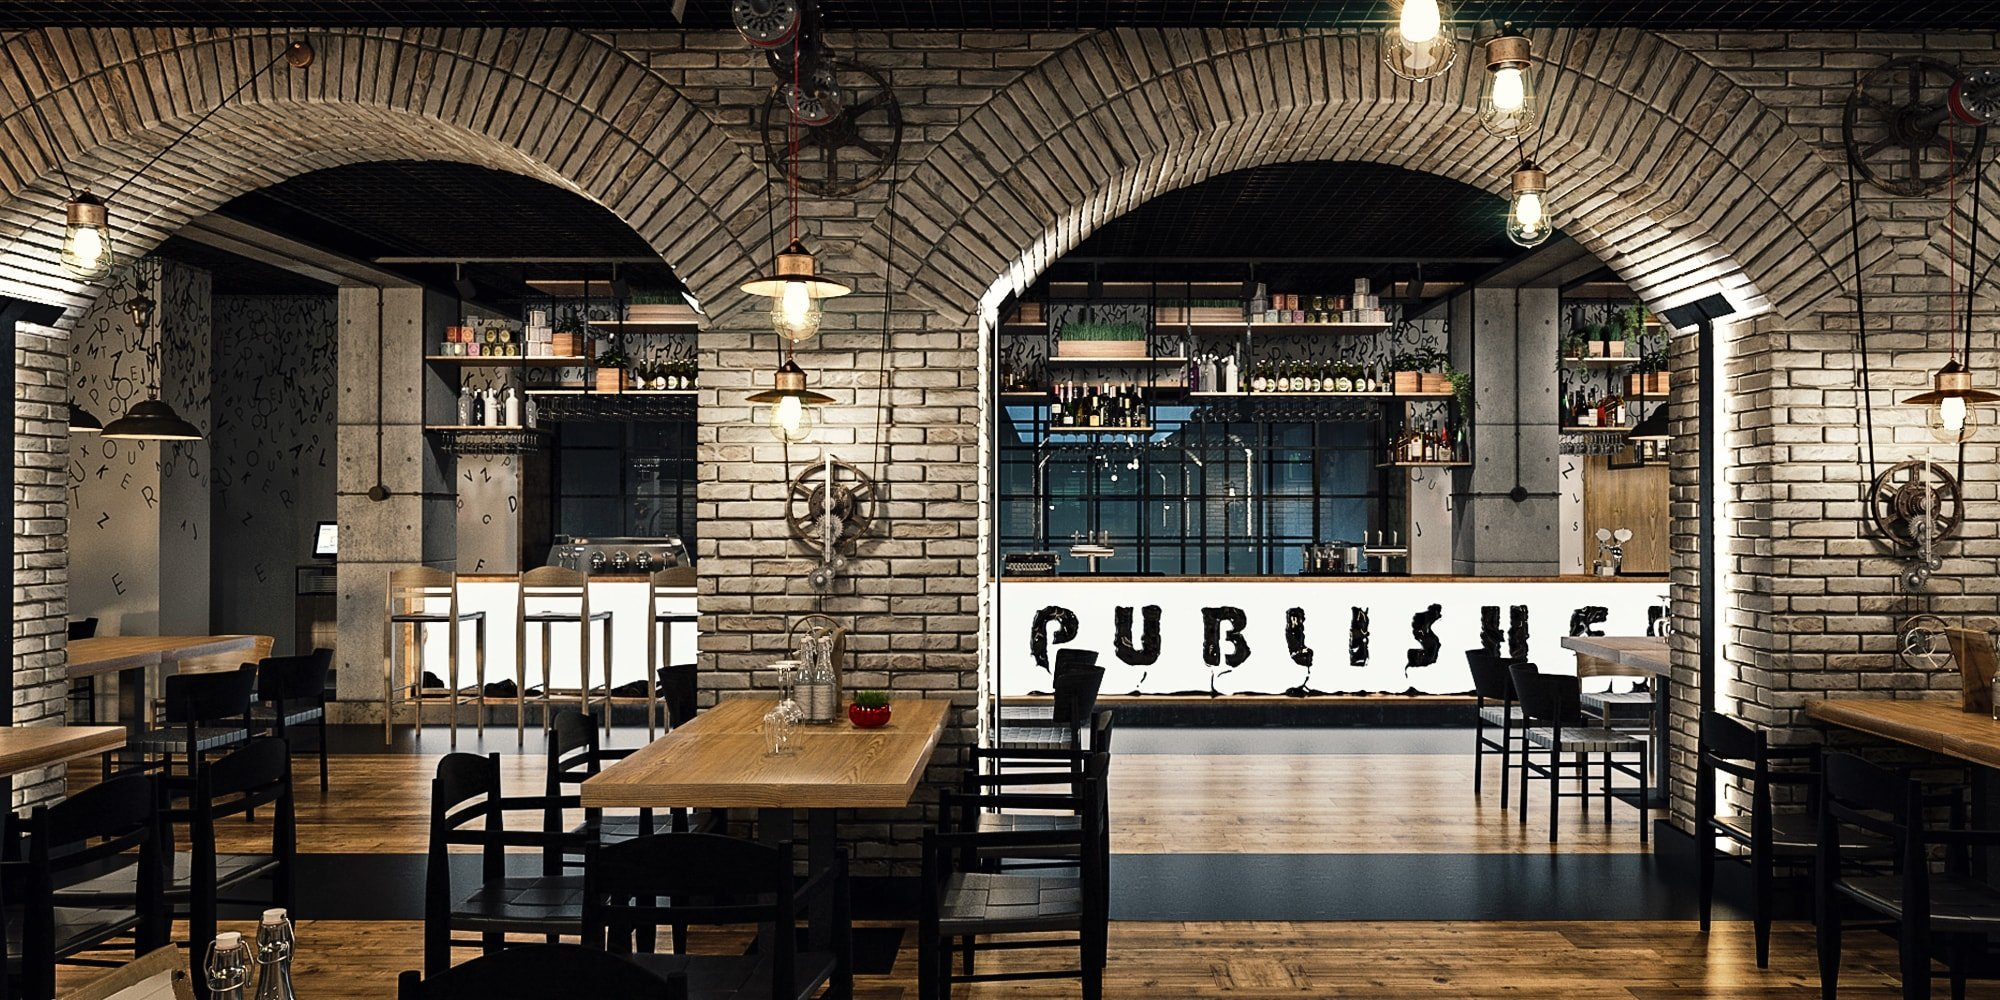 The publisher restaurant industrial design style